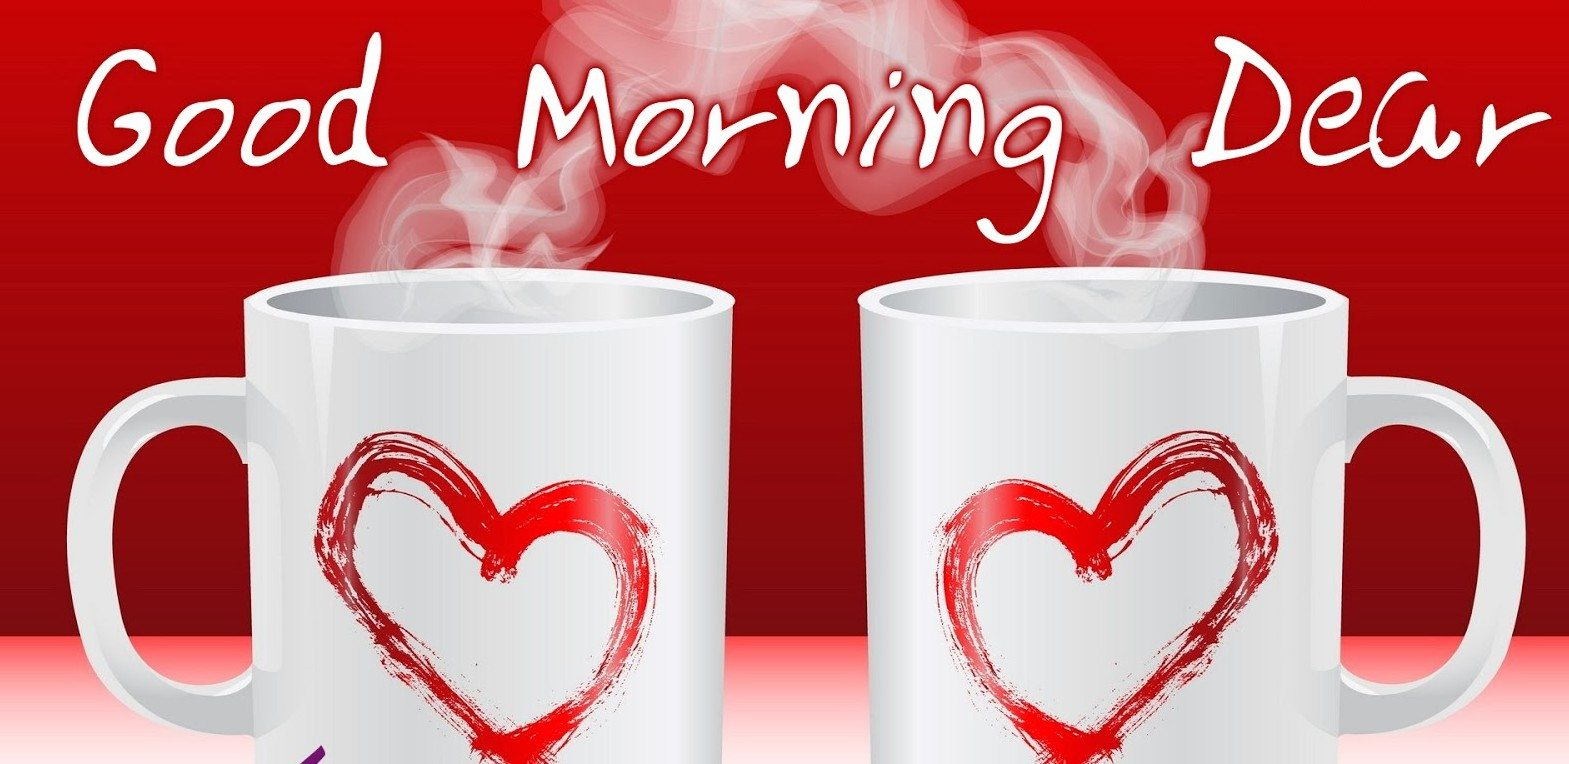 Good Morning Dear Wishes Image